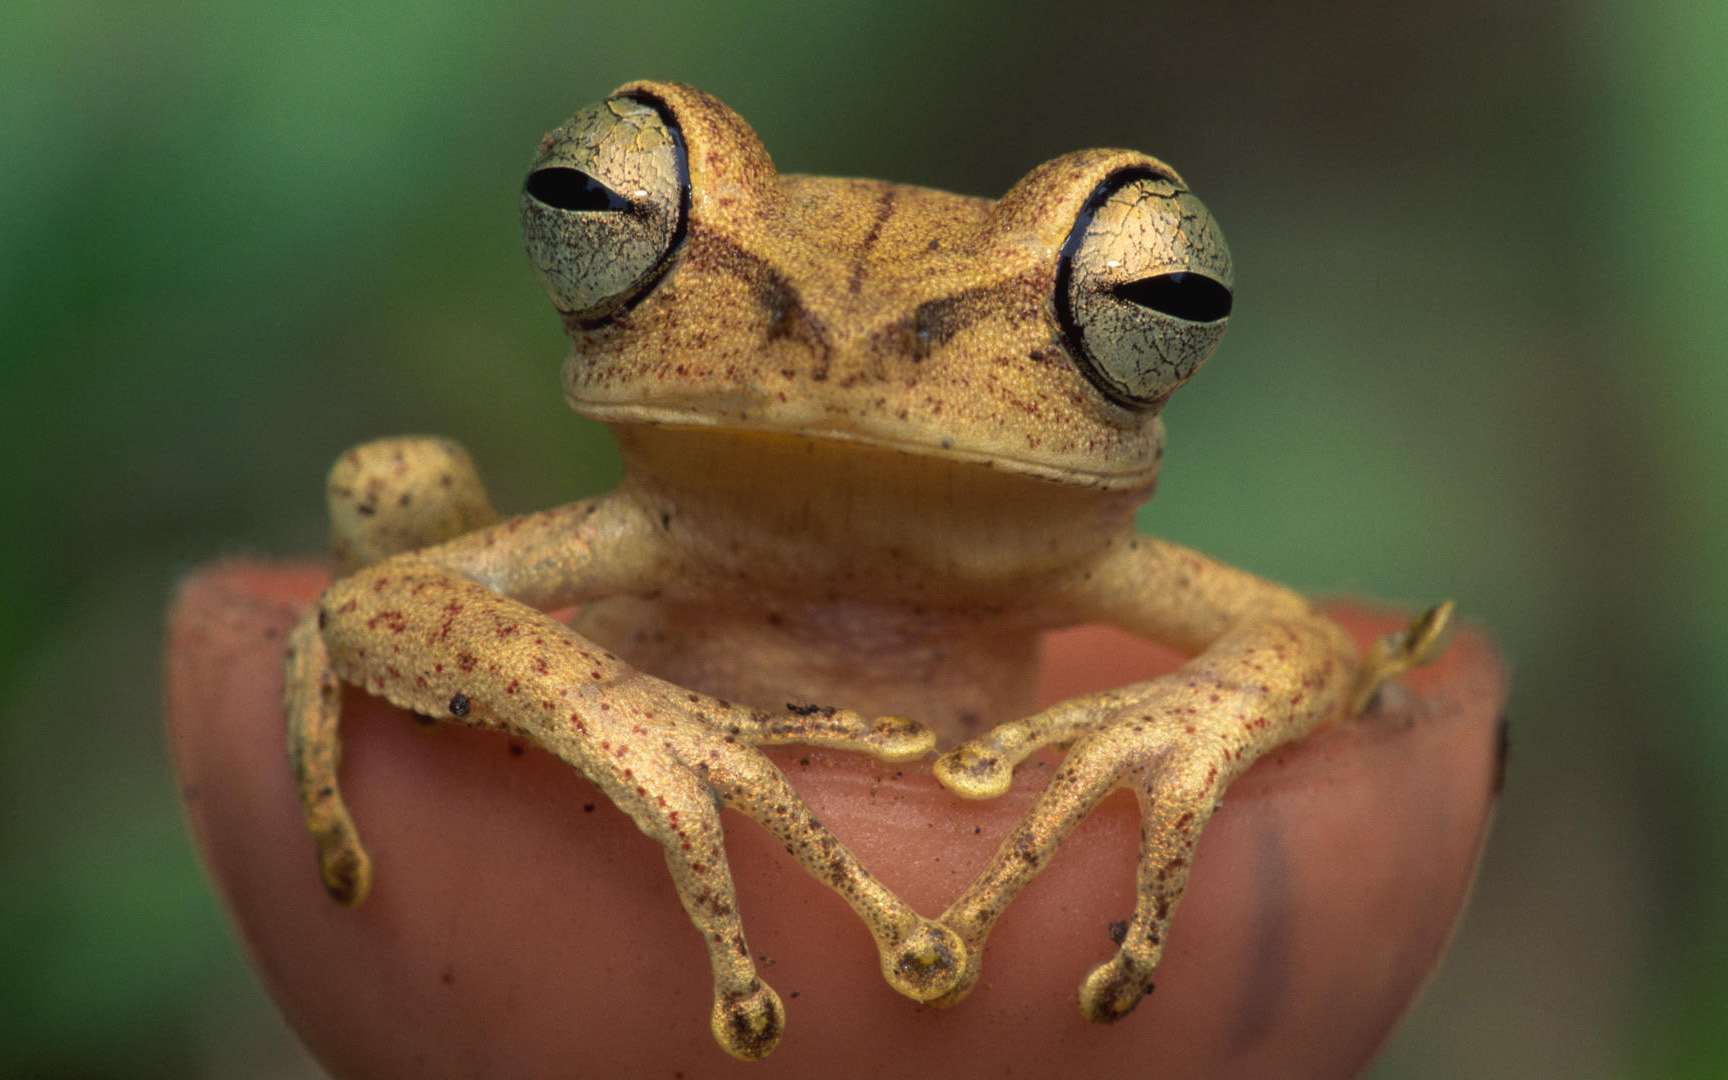 close-up Frogs amphibians HD Wallpaper